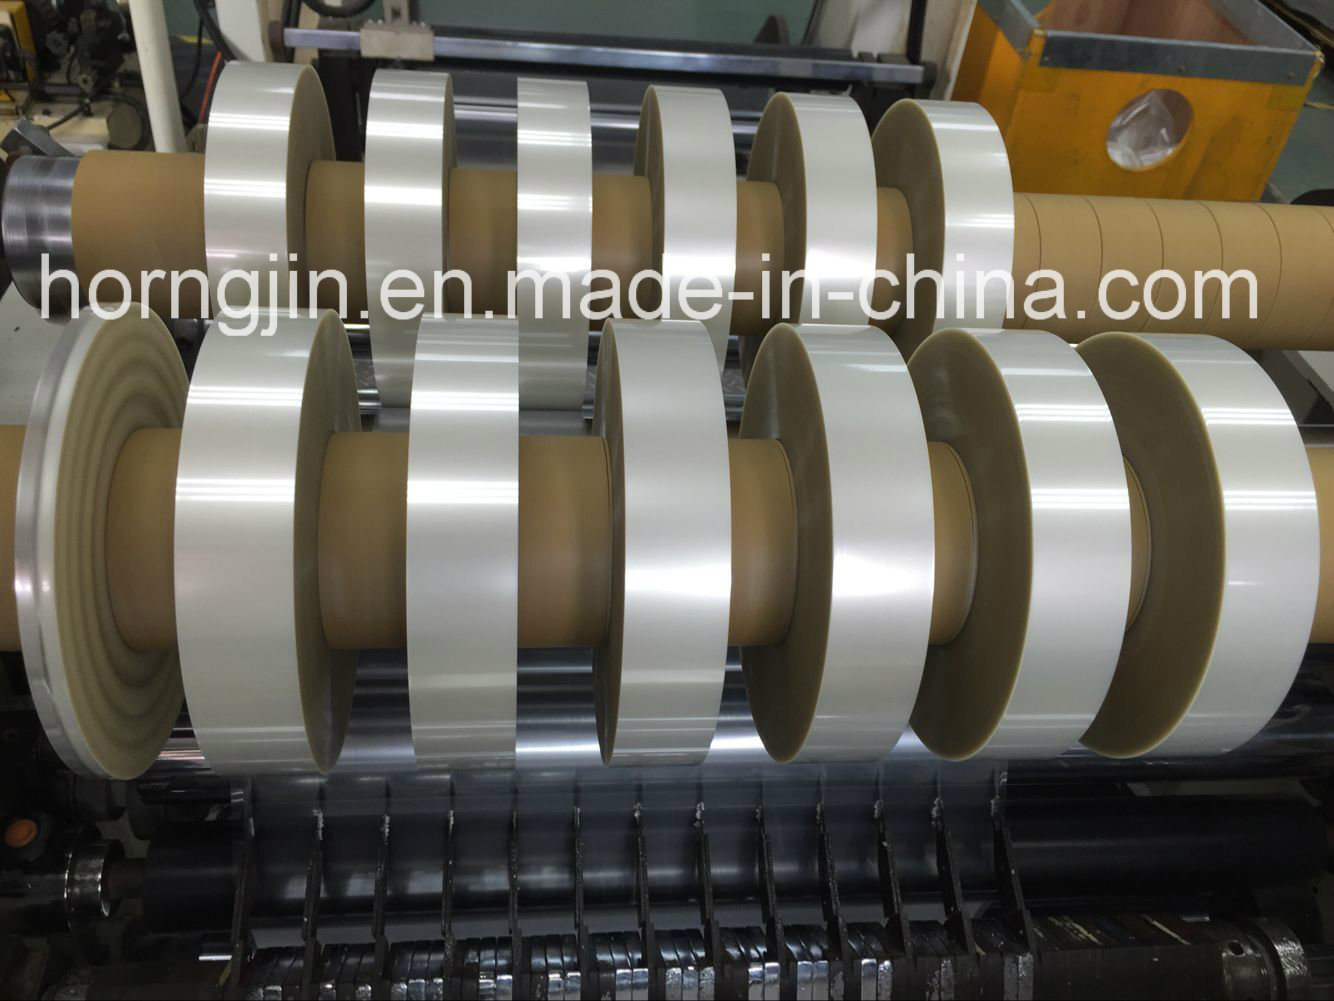 Heat Seal Laminated Coating Film Polyester Tape Adhesive Tape Pet Mylar for Cable Shield Wrapping